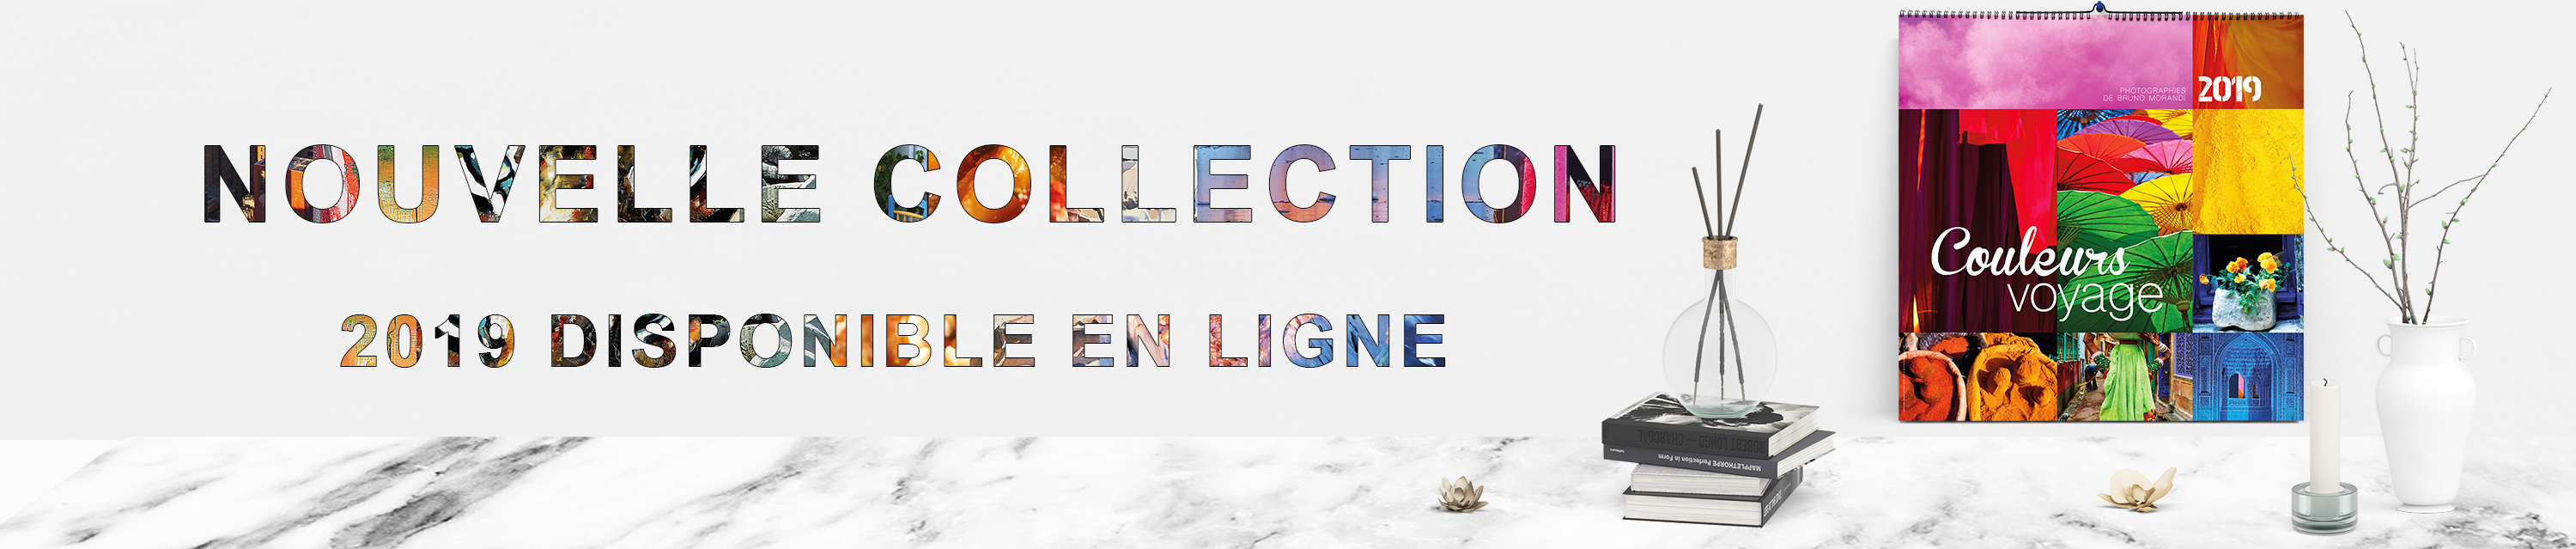 Nouvelle collection disponible en ligne